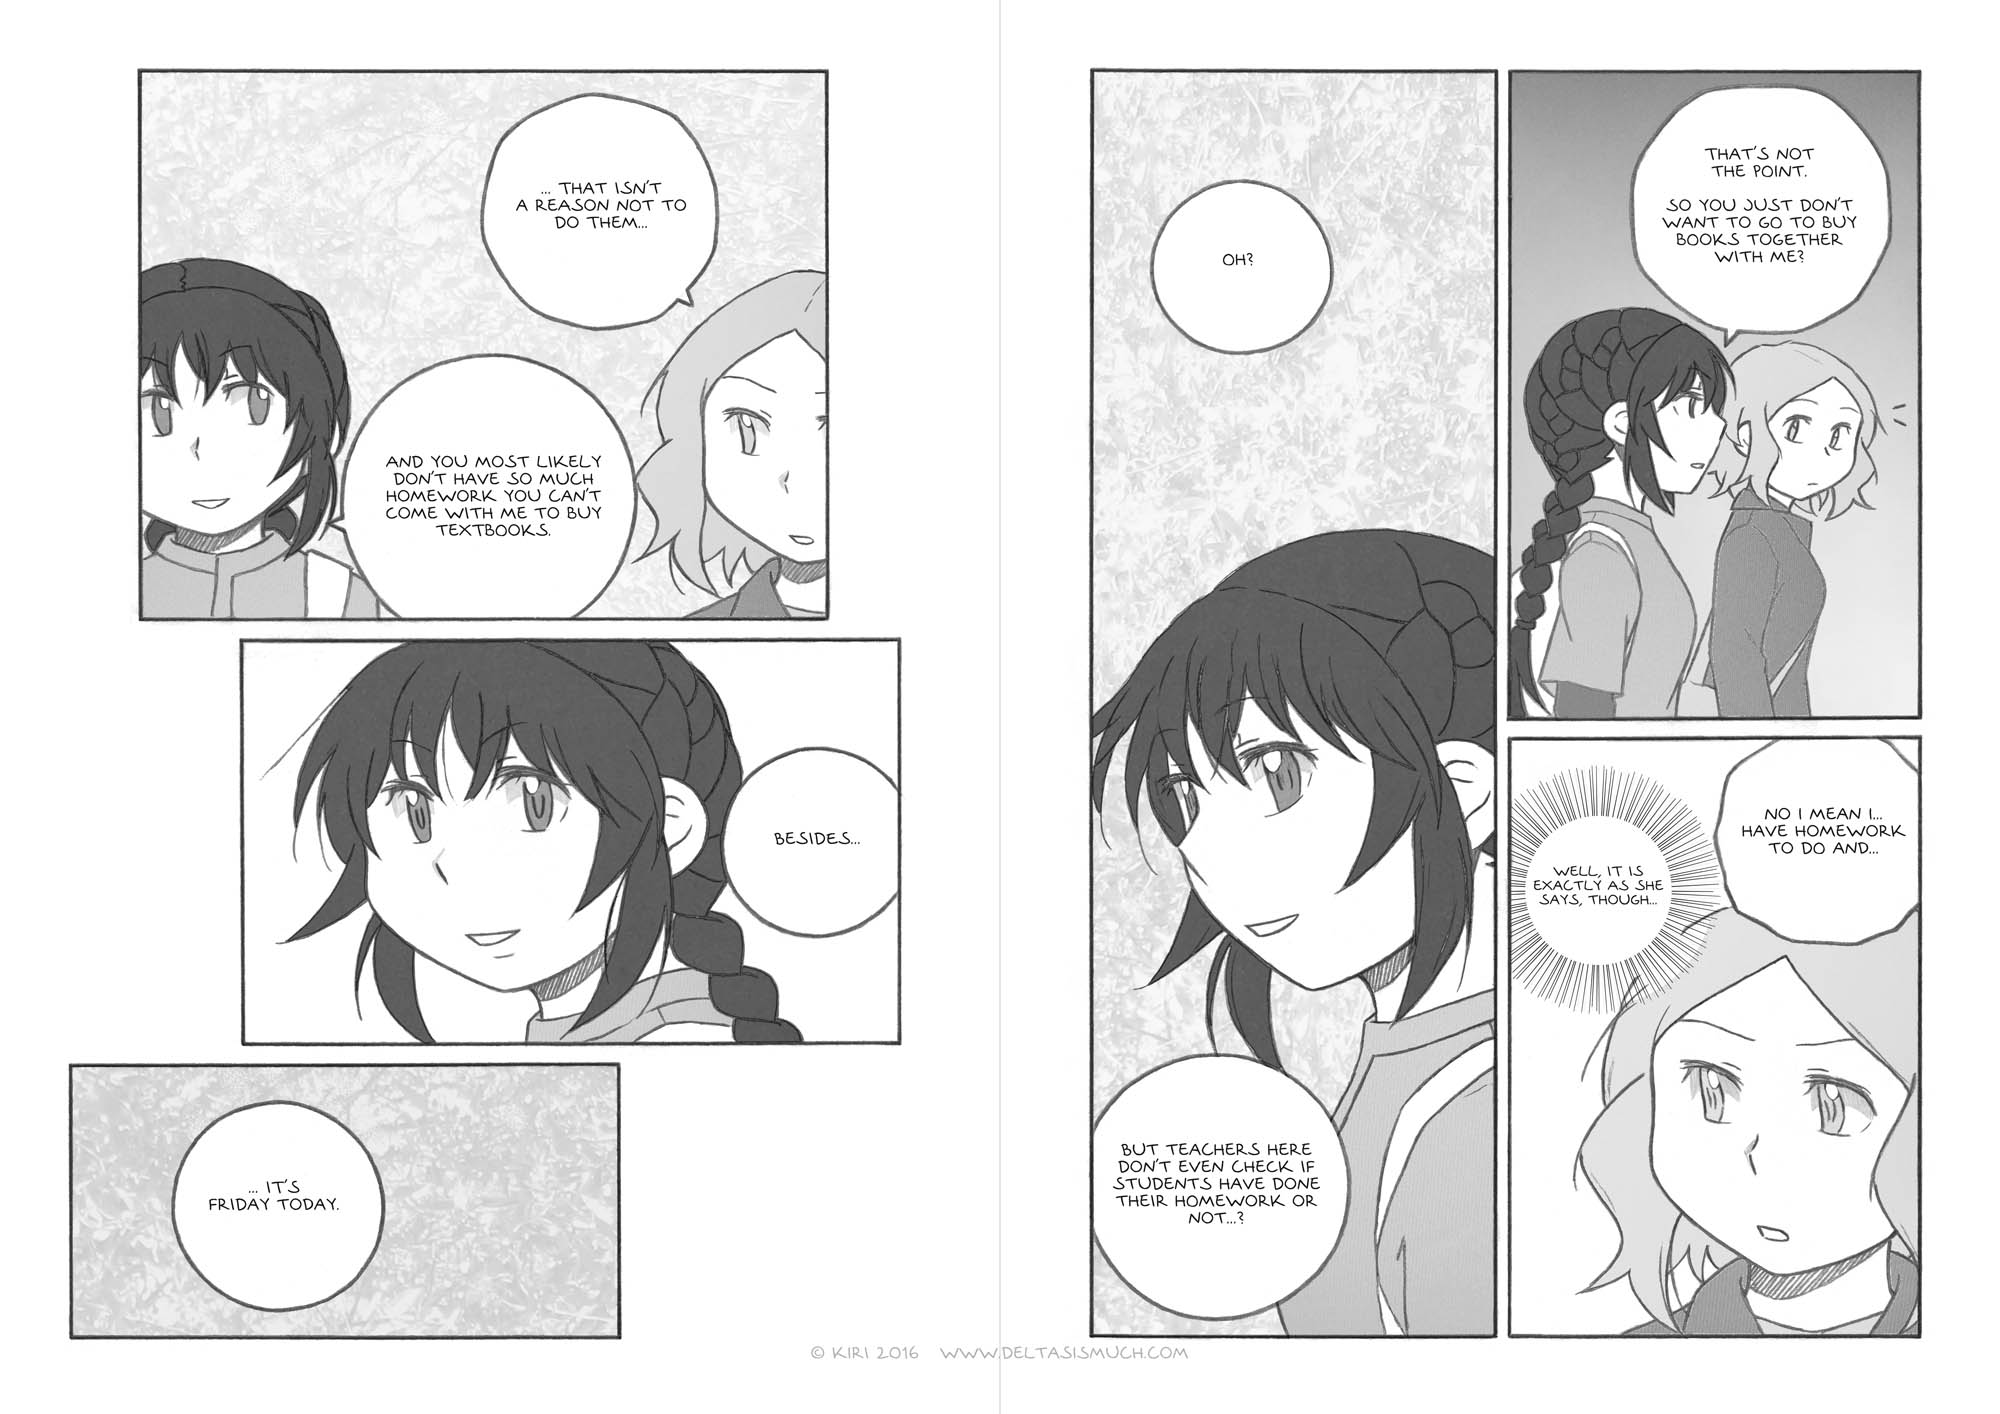 Chapter 3, pages 8 and 9